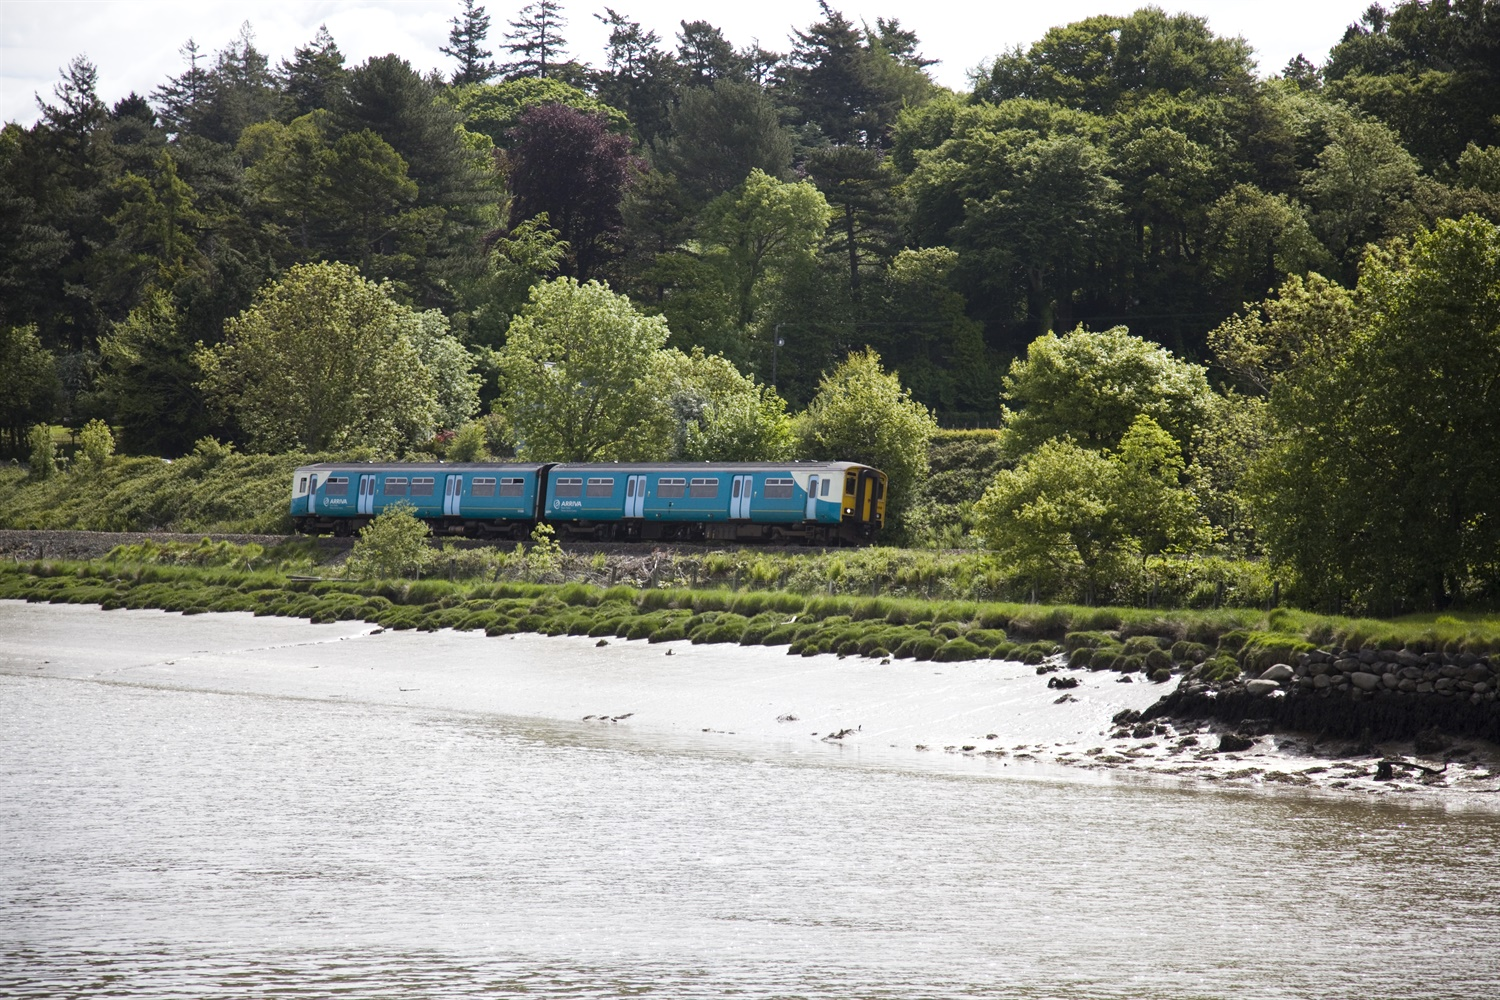 Welsh trains £200k makeover set to start